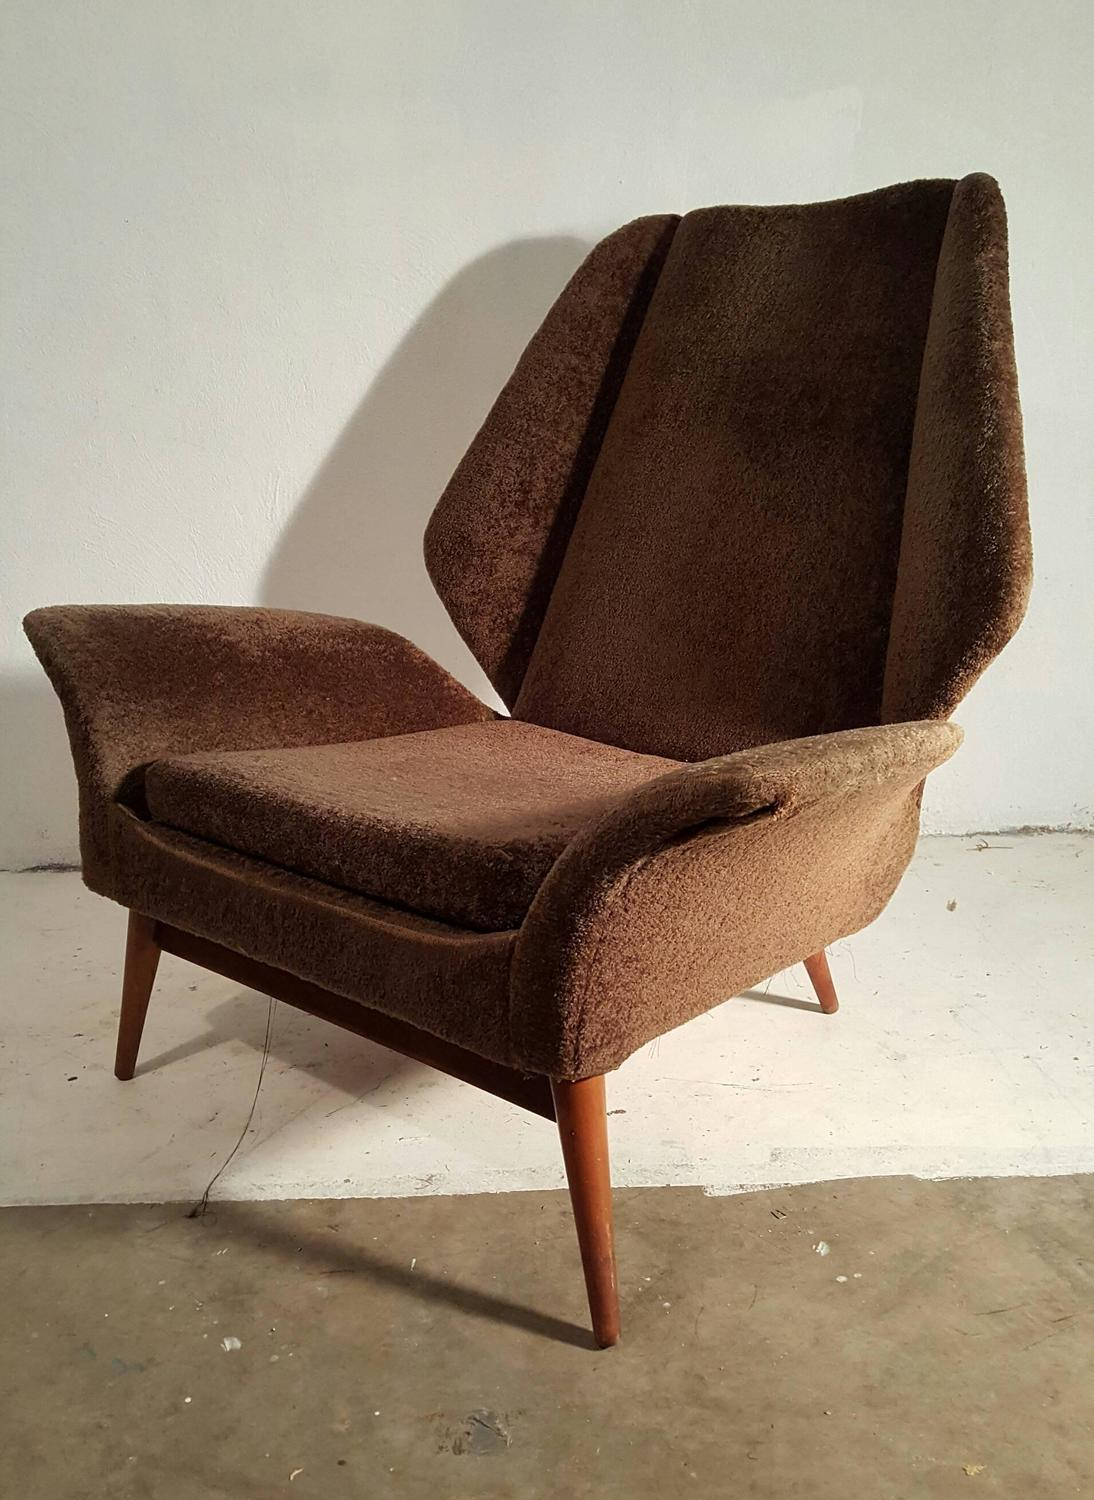 Organic Italian Modernist Lounge Chair Oversized Winged Arms at 1stdibs